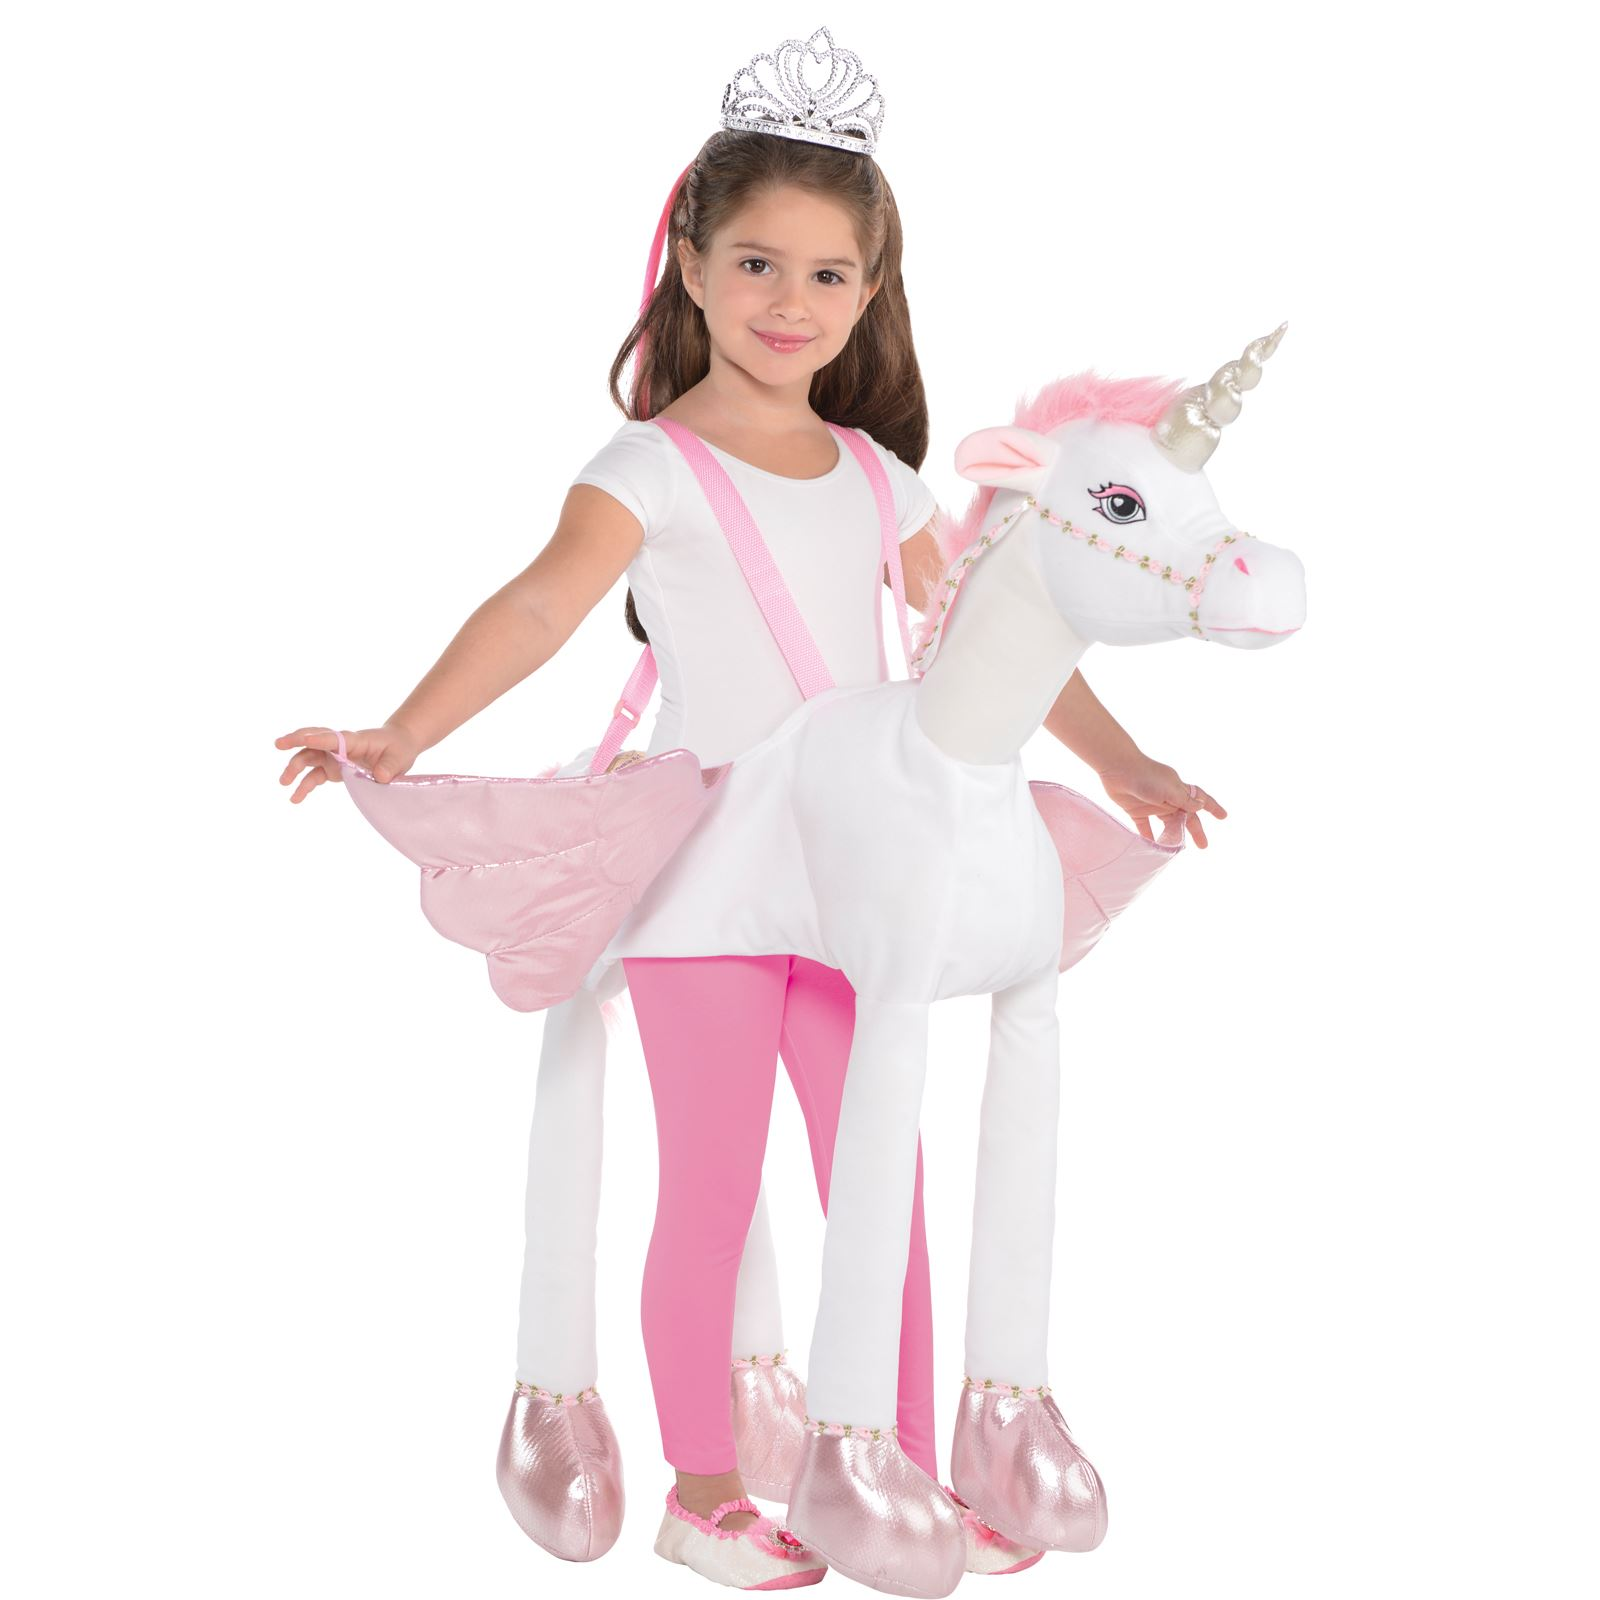 Unicorn Toys For Girls : Kids girls ride on unicorn costume plush toy pegasus pony